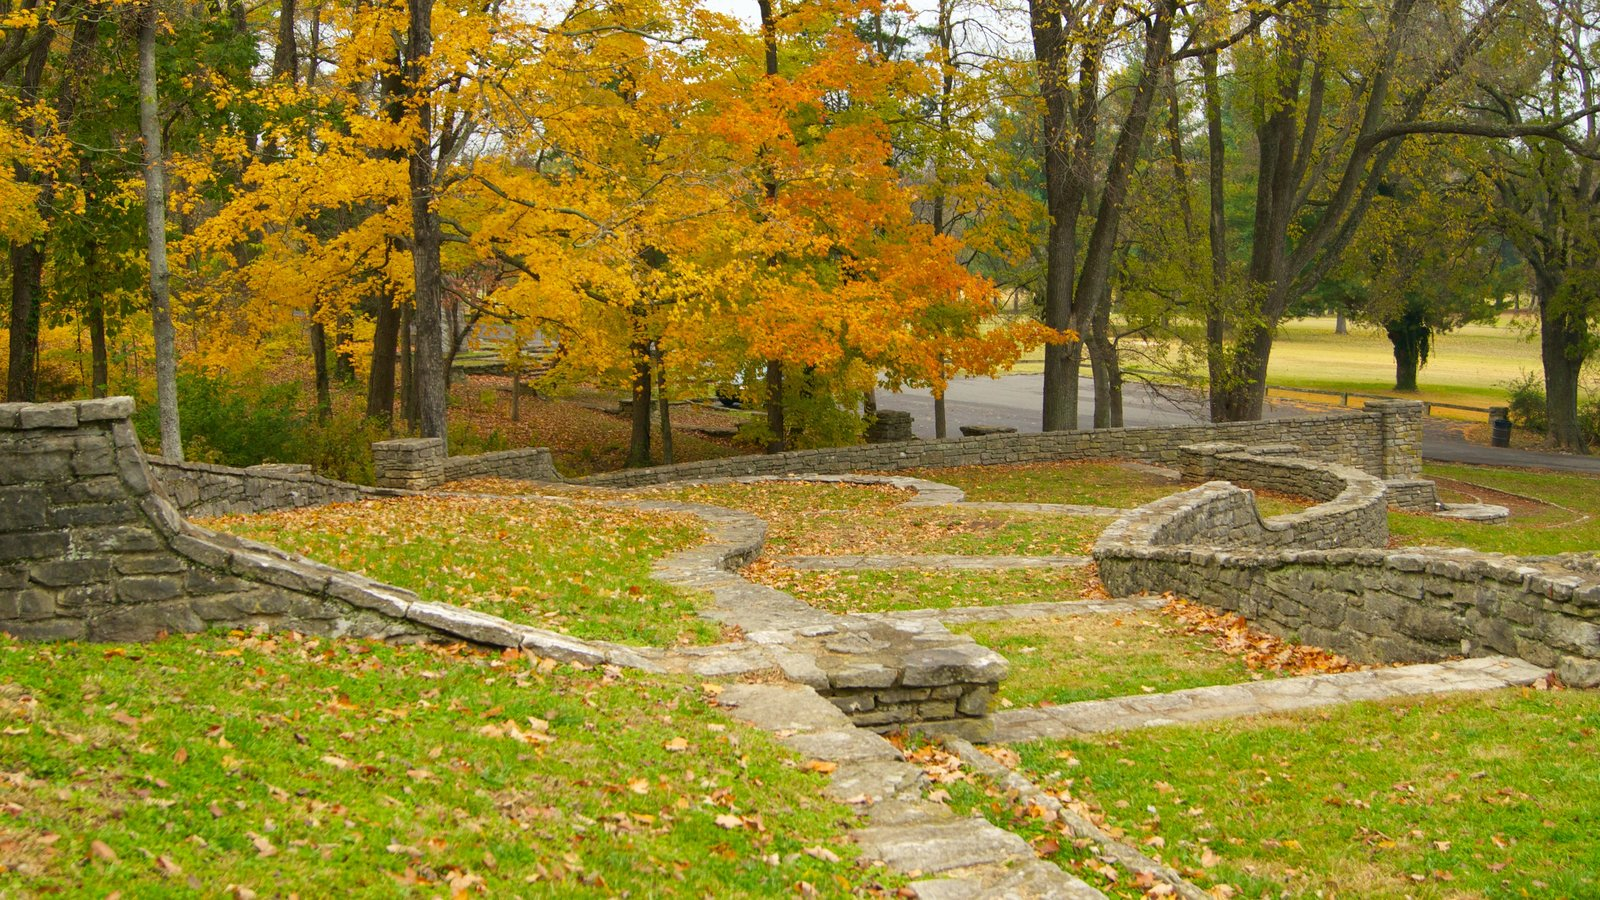 Edwin and Percy Warner Parks featuring fall colors, a garden and landscape views